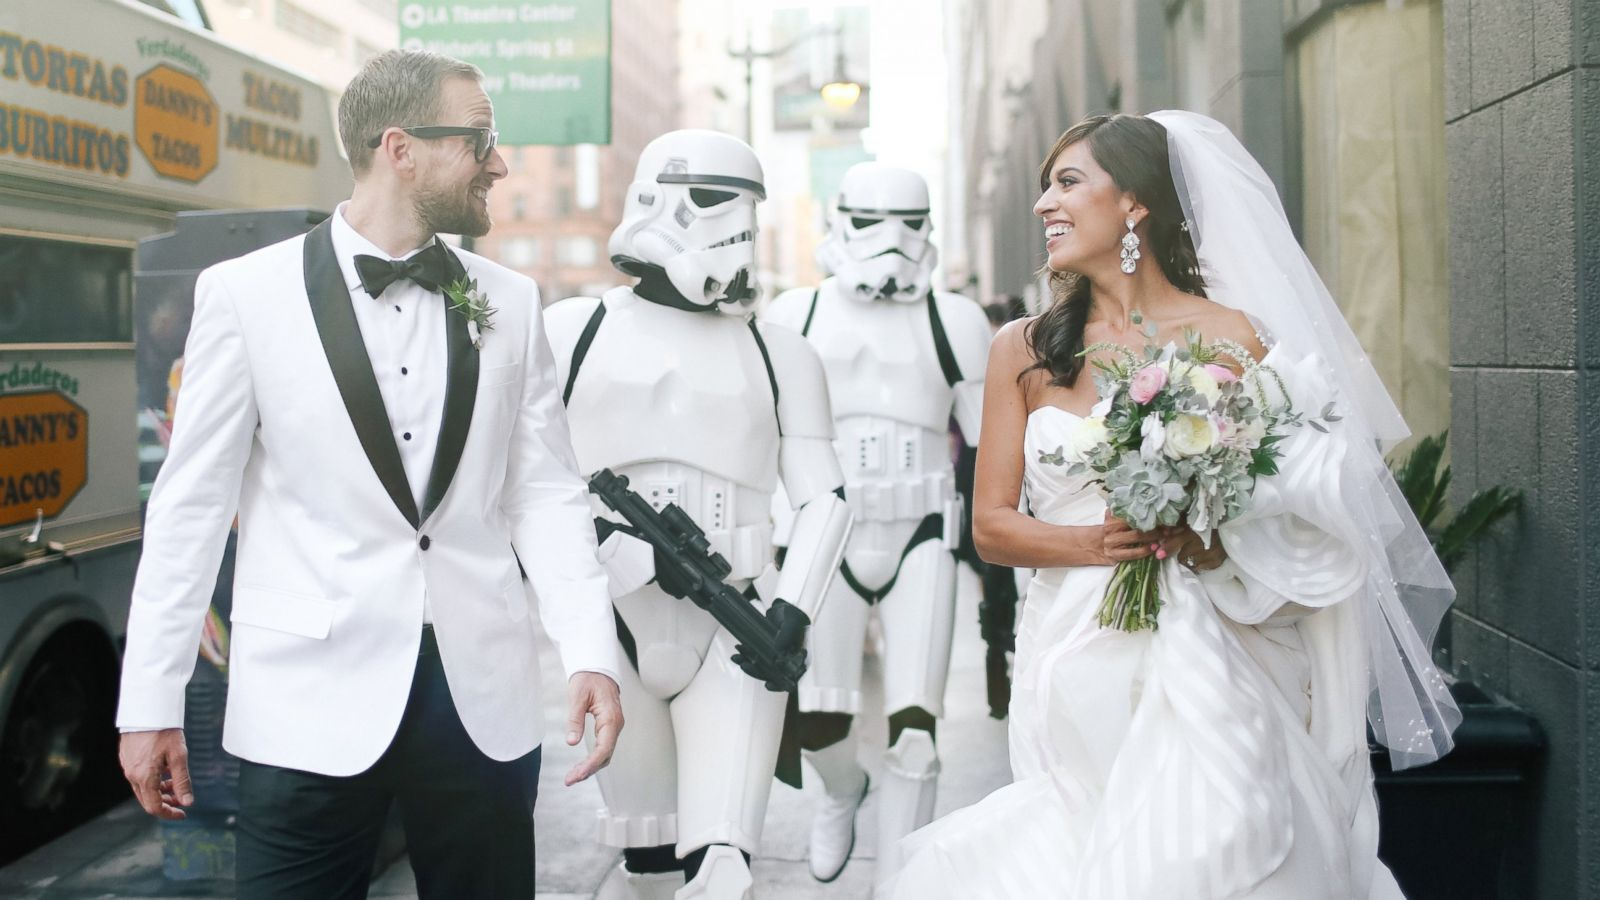 Bride Obsessed With \'Star Wars\' Throws Theme Wedding With Touches ...